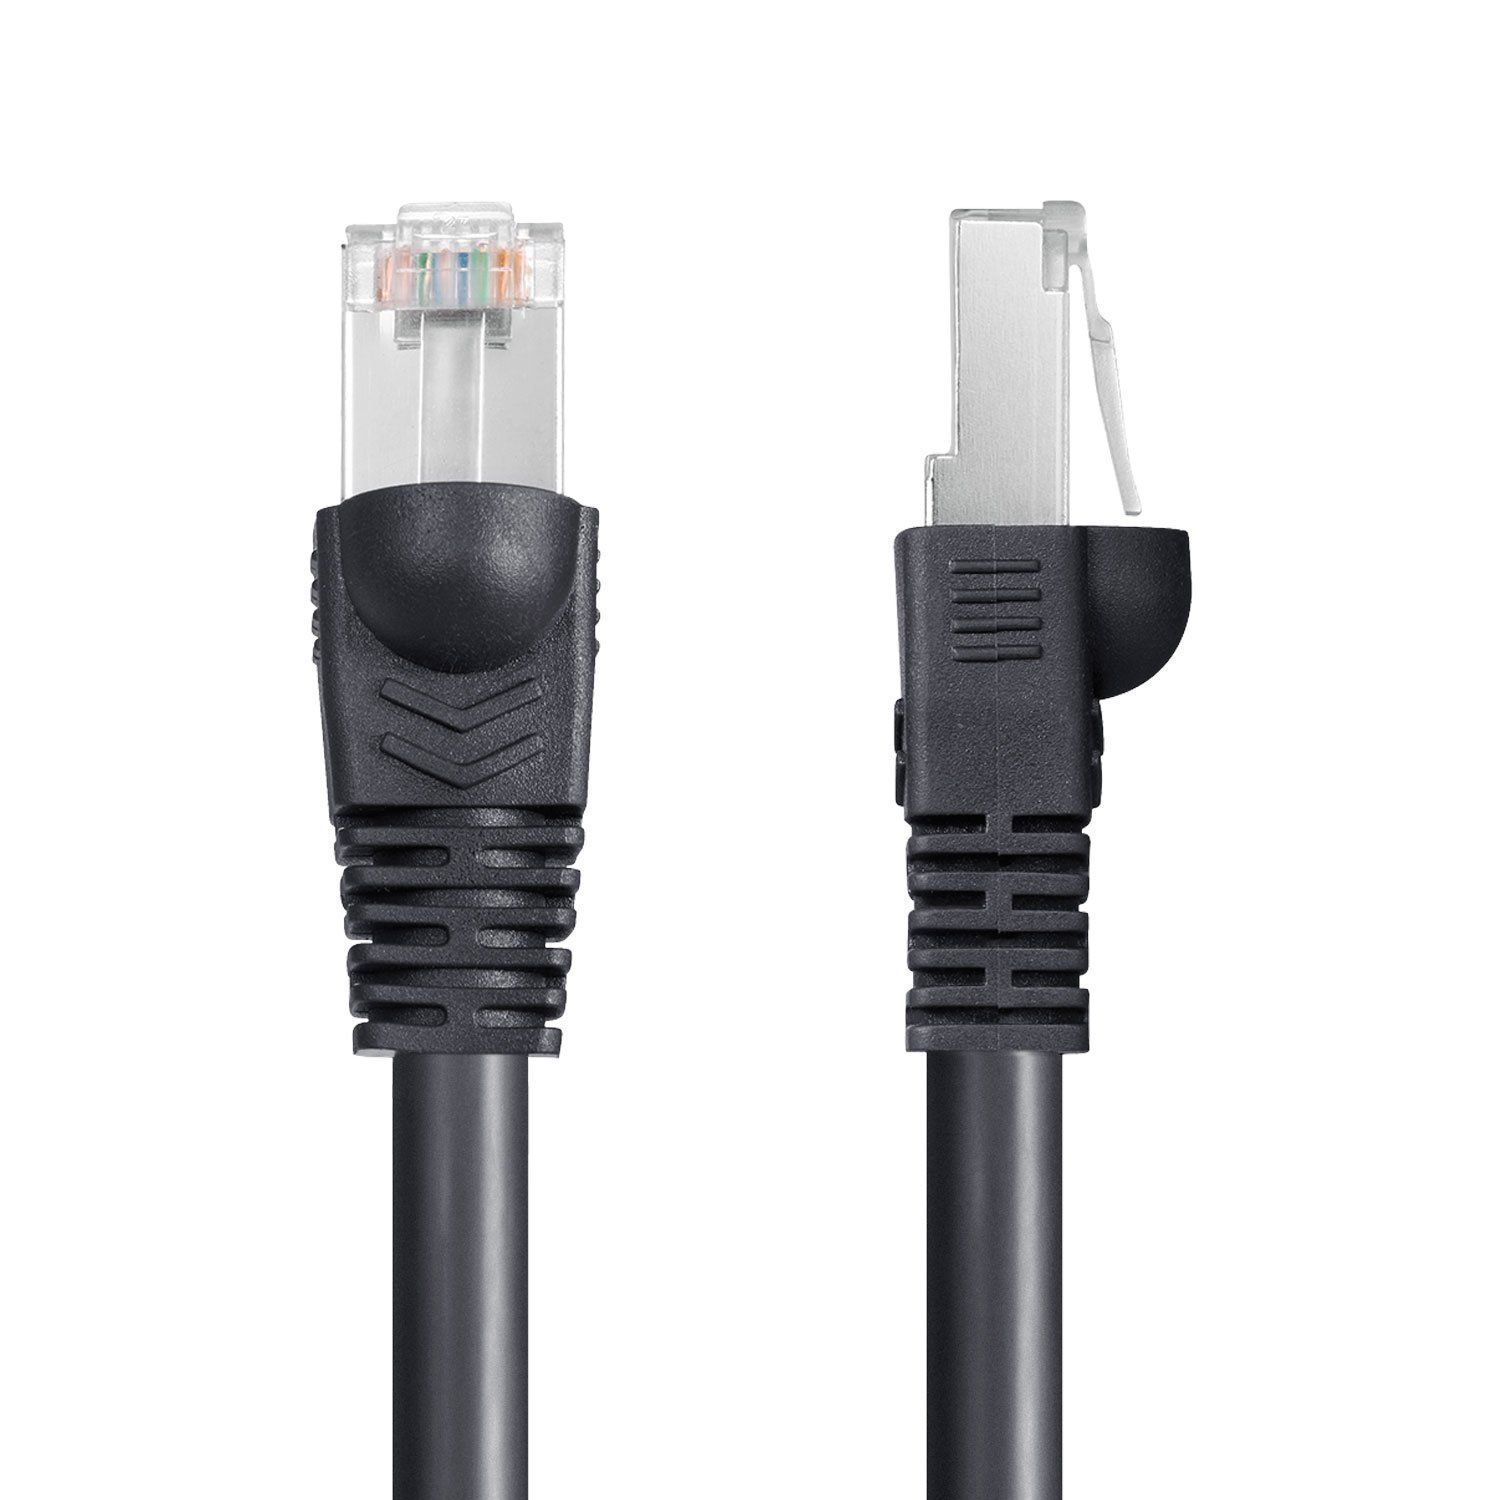 Outdoor Ethernet 15ft Cat6 Cable Imonta Shielded Grounded Uv Resistant Waterproof Buried Able Network Cord Ad Diy Modern Furniture Cat6 Cable Uv Resistant